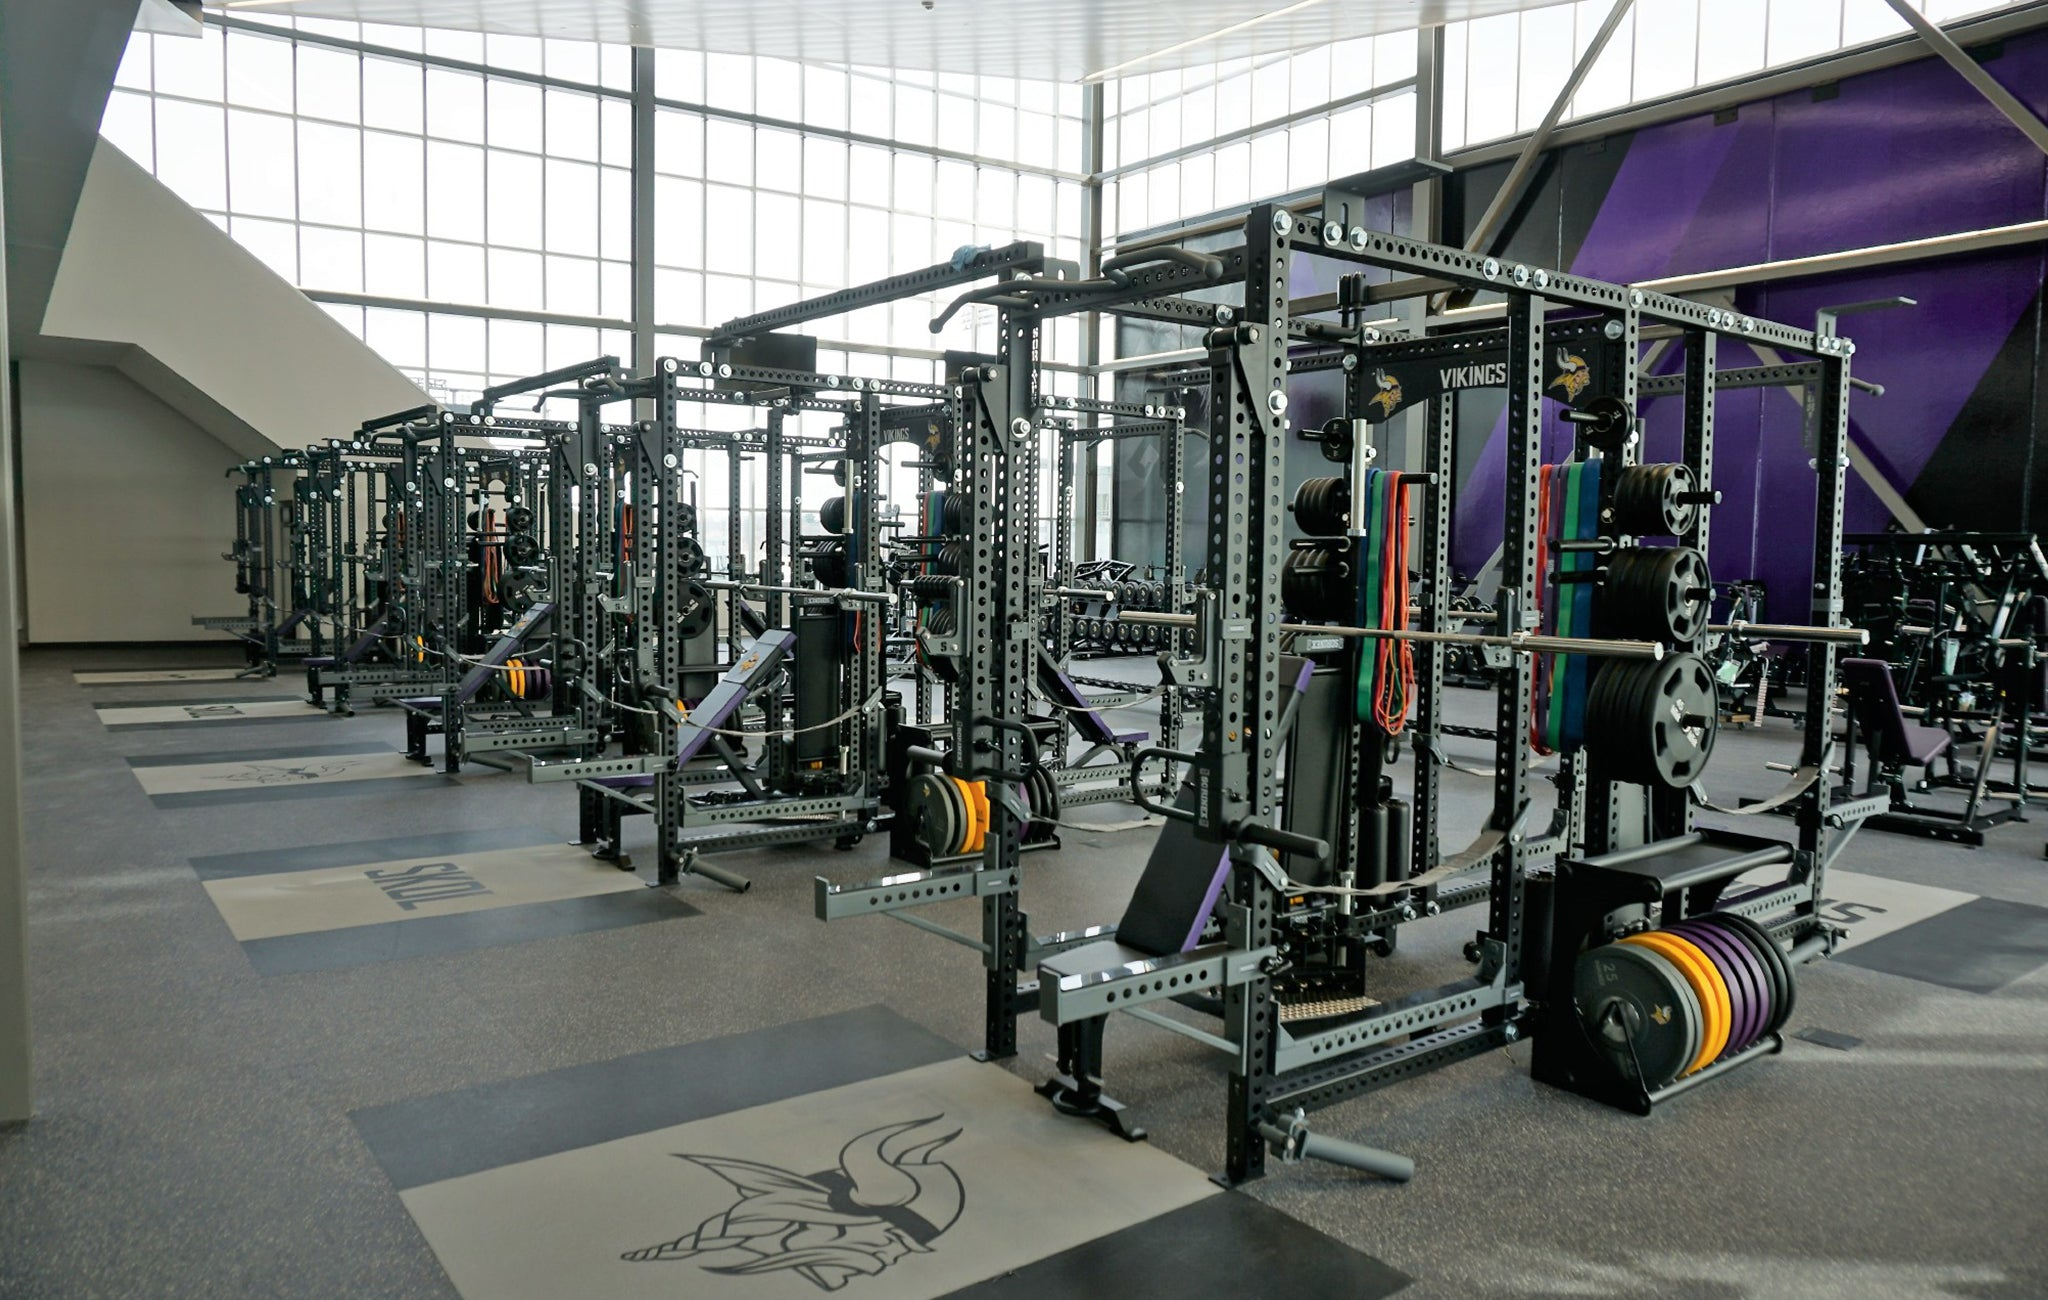 Minnesota Vikings weight room